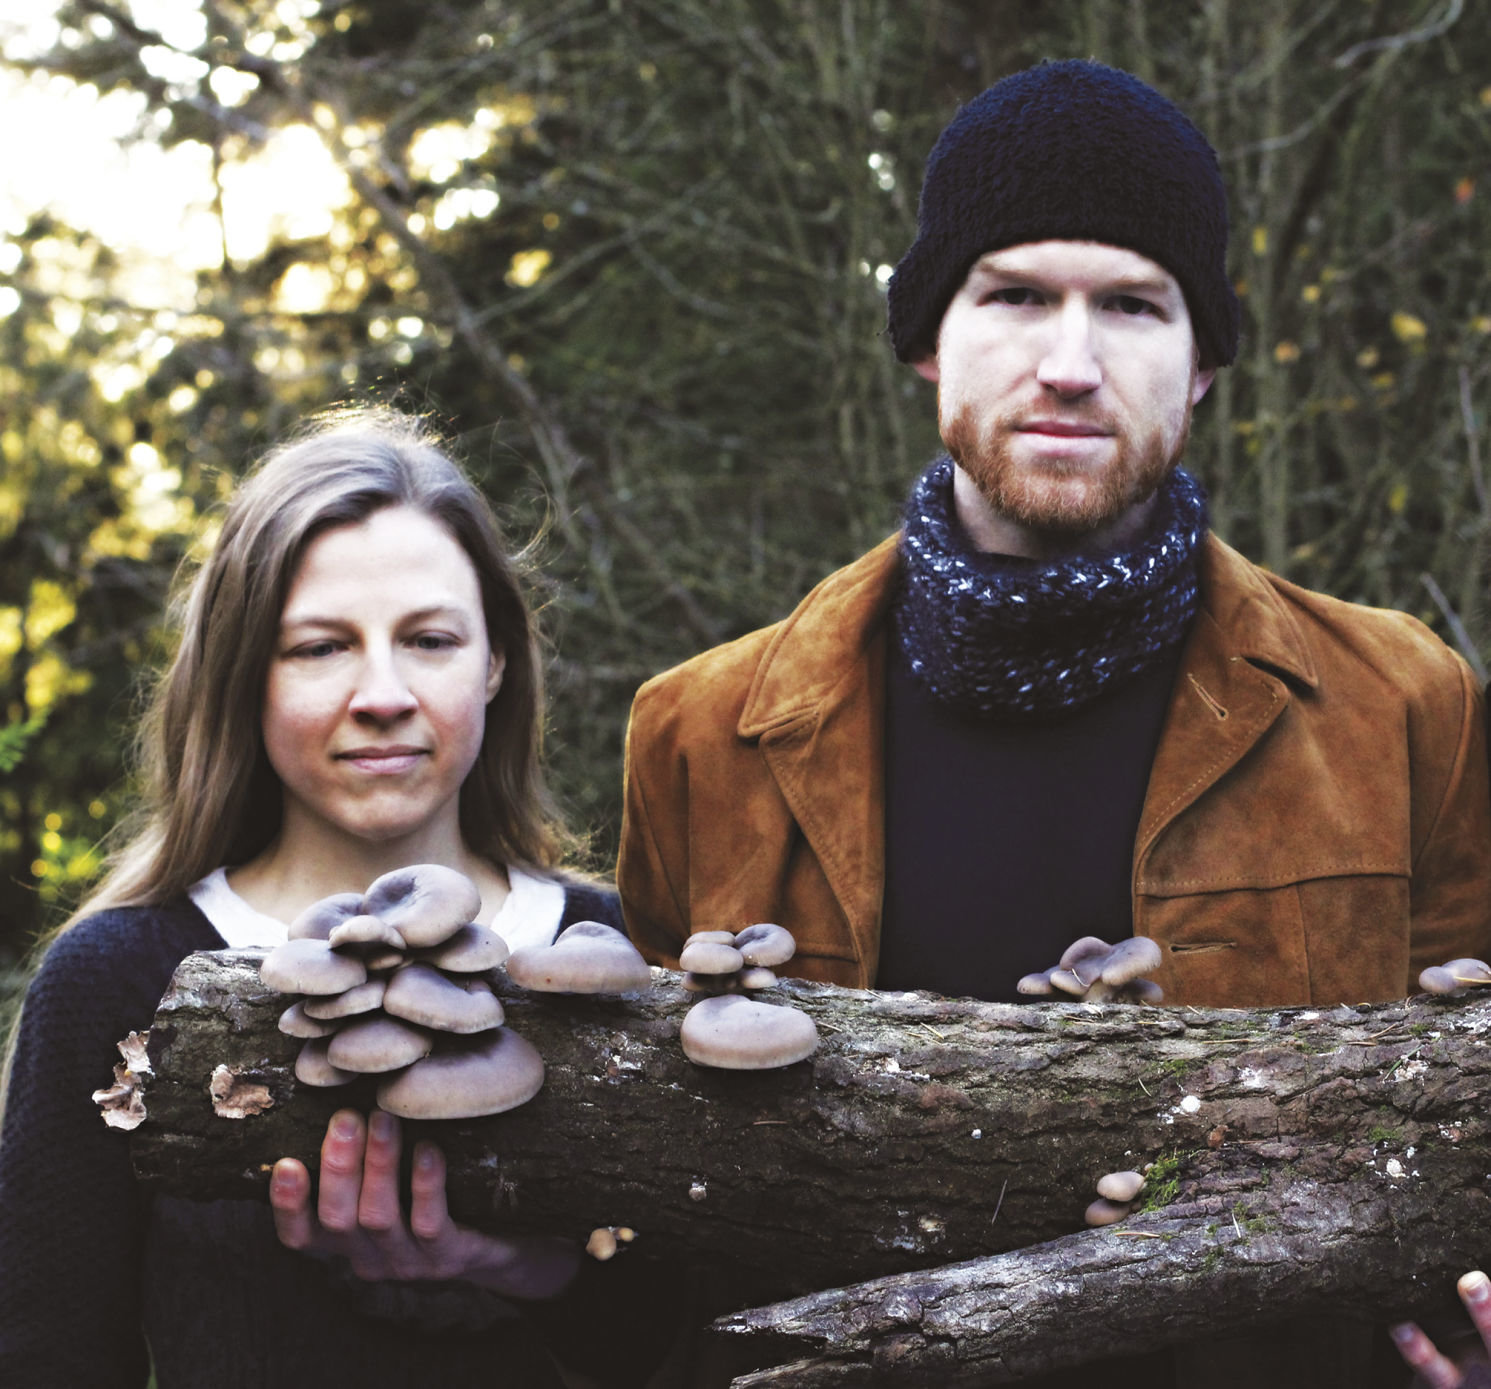 "Take a vivid musical journey The Winterlings, a Seattle indie folk duo, perform in concert at 7:30 p.m., Saturday, March 4 at the Unity Spiritual Enrichment Center, 3918 San Juan Ave. Throughout their albums, as in their live shows, songwriters Amanda Birdsall and Wolff Bowden take turns singing lead and playing guitar, violin, banjitar, harmonium, piano and foot percussion. ""An evening with The Winterlings takes listeners on vivid and cinematic journeys, soaring with astronauts above a warming planet, hitchhiking from Alaska with a fisherman heading home to propose to his beloved, witnessing the struggle of a girl in the storm of social anxiety and walking deeper into the forest of human existence,"" according to a press release. Admission is $10 at the door. Courtesy photo"